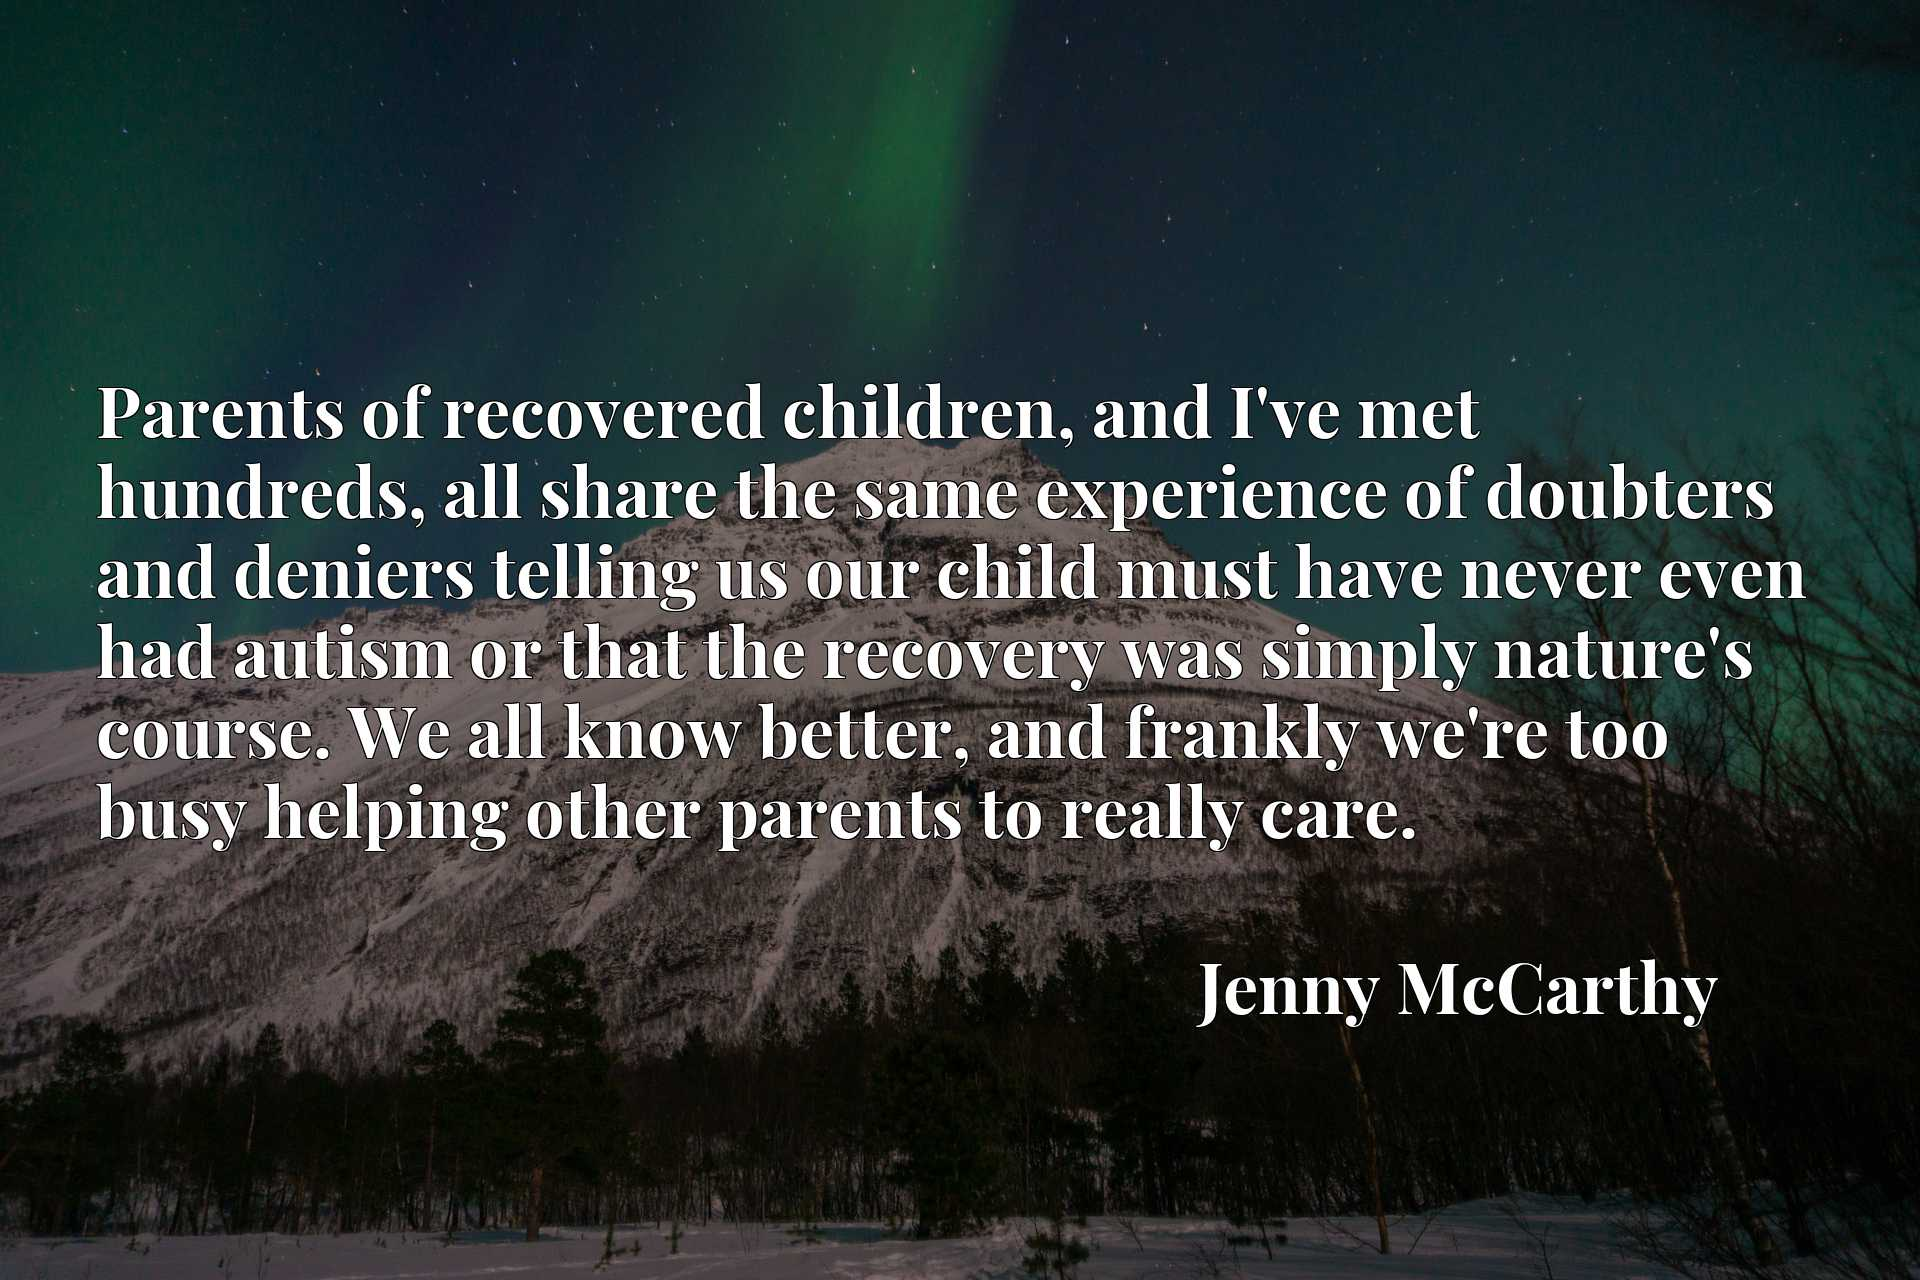 Parents of recovered children, and I've met hundreds, all share the same experience of doubters and deniers telling us our child must have never even had autism or that the recovery was simply nature's course. We all know better, and frankly we're too busy helping other parents to really care.